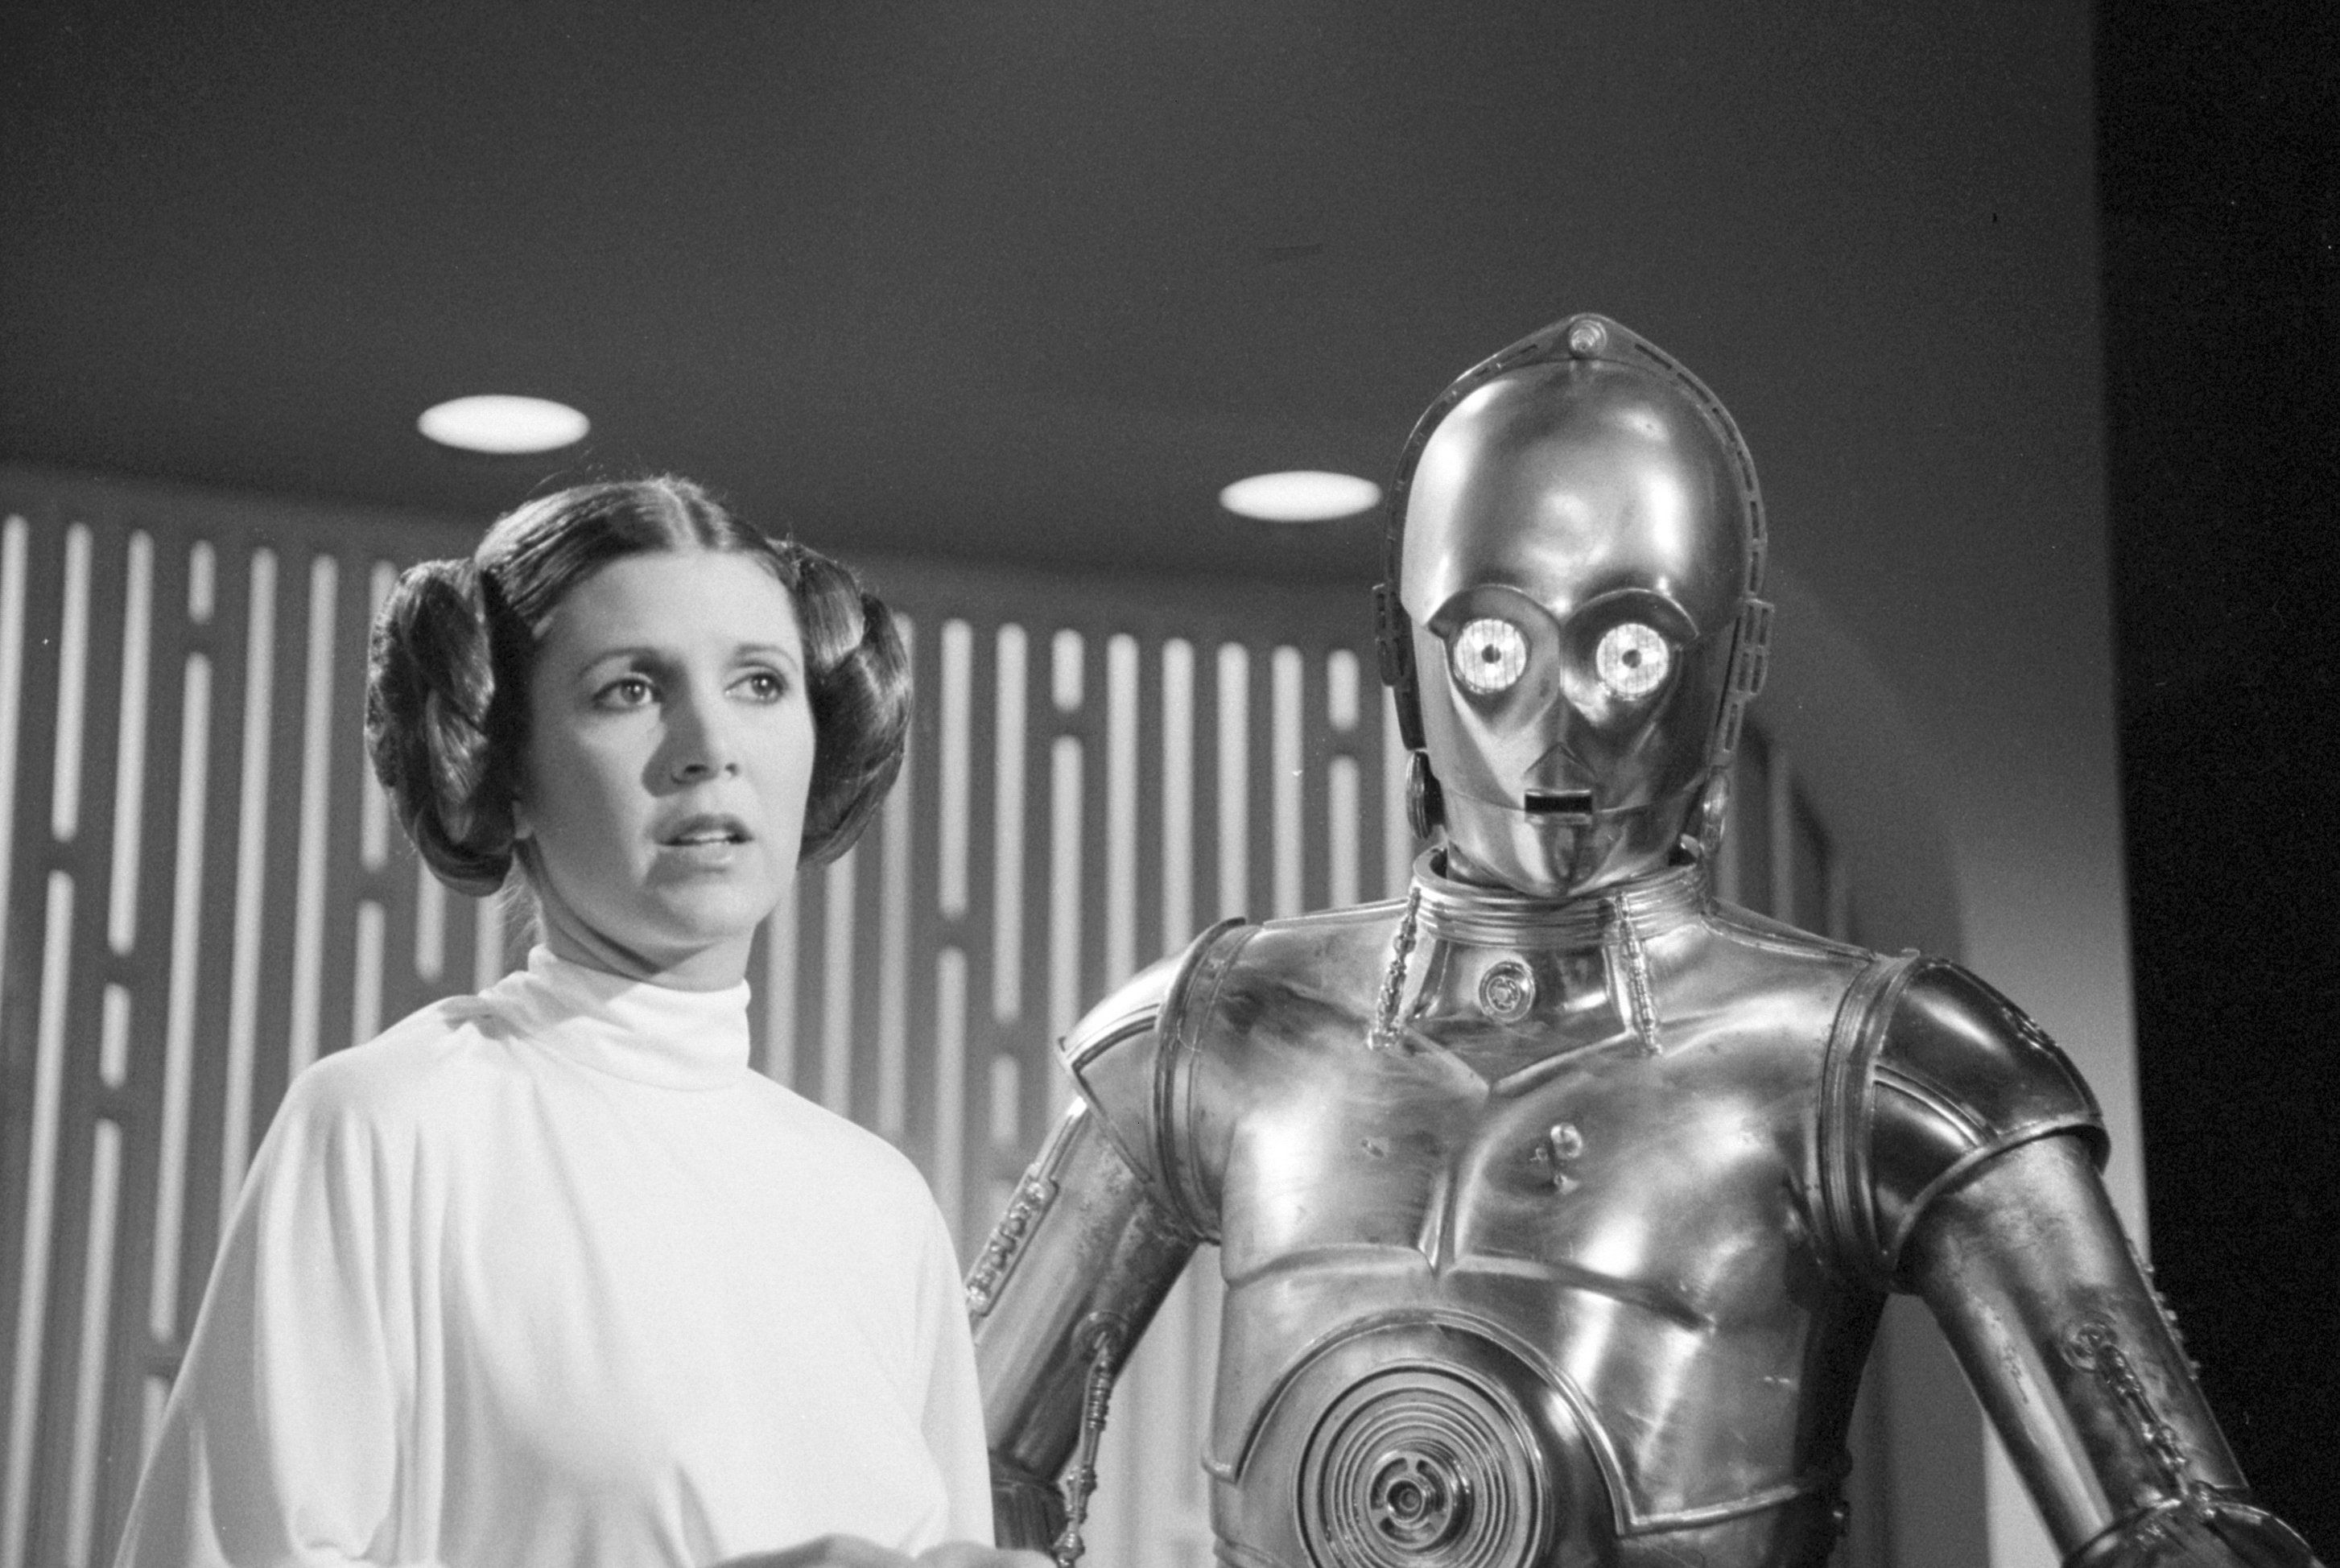 The Internet Just Realized Princess Leia Had a Ph.D